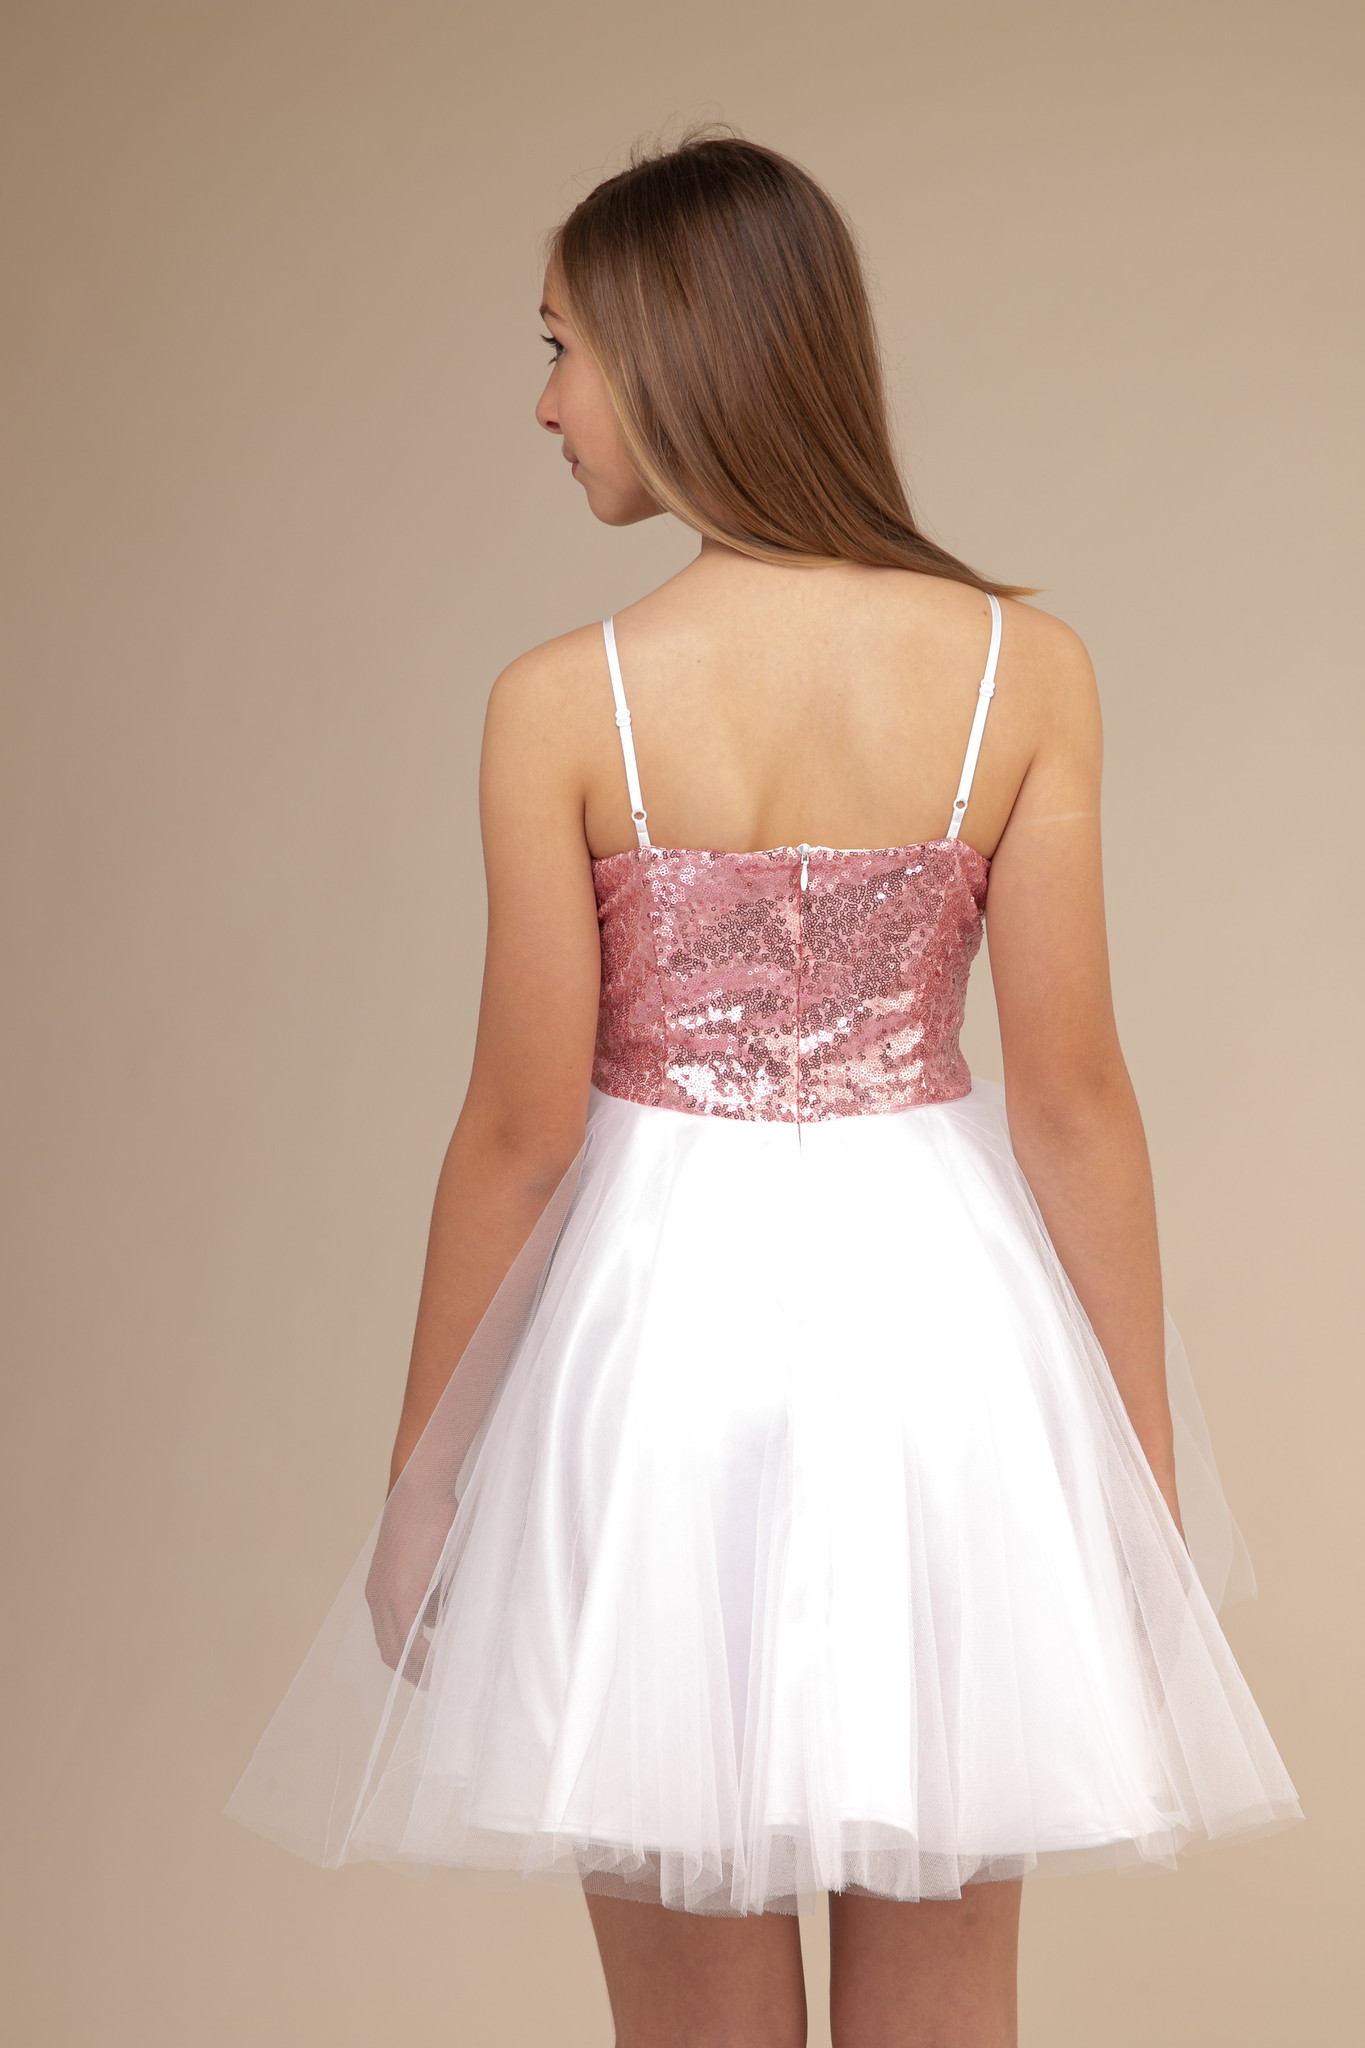 Blush Pink Sequin Party Dress in Longer Length.